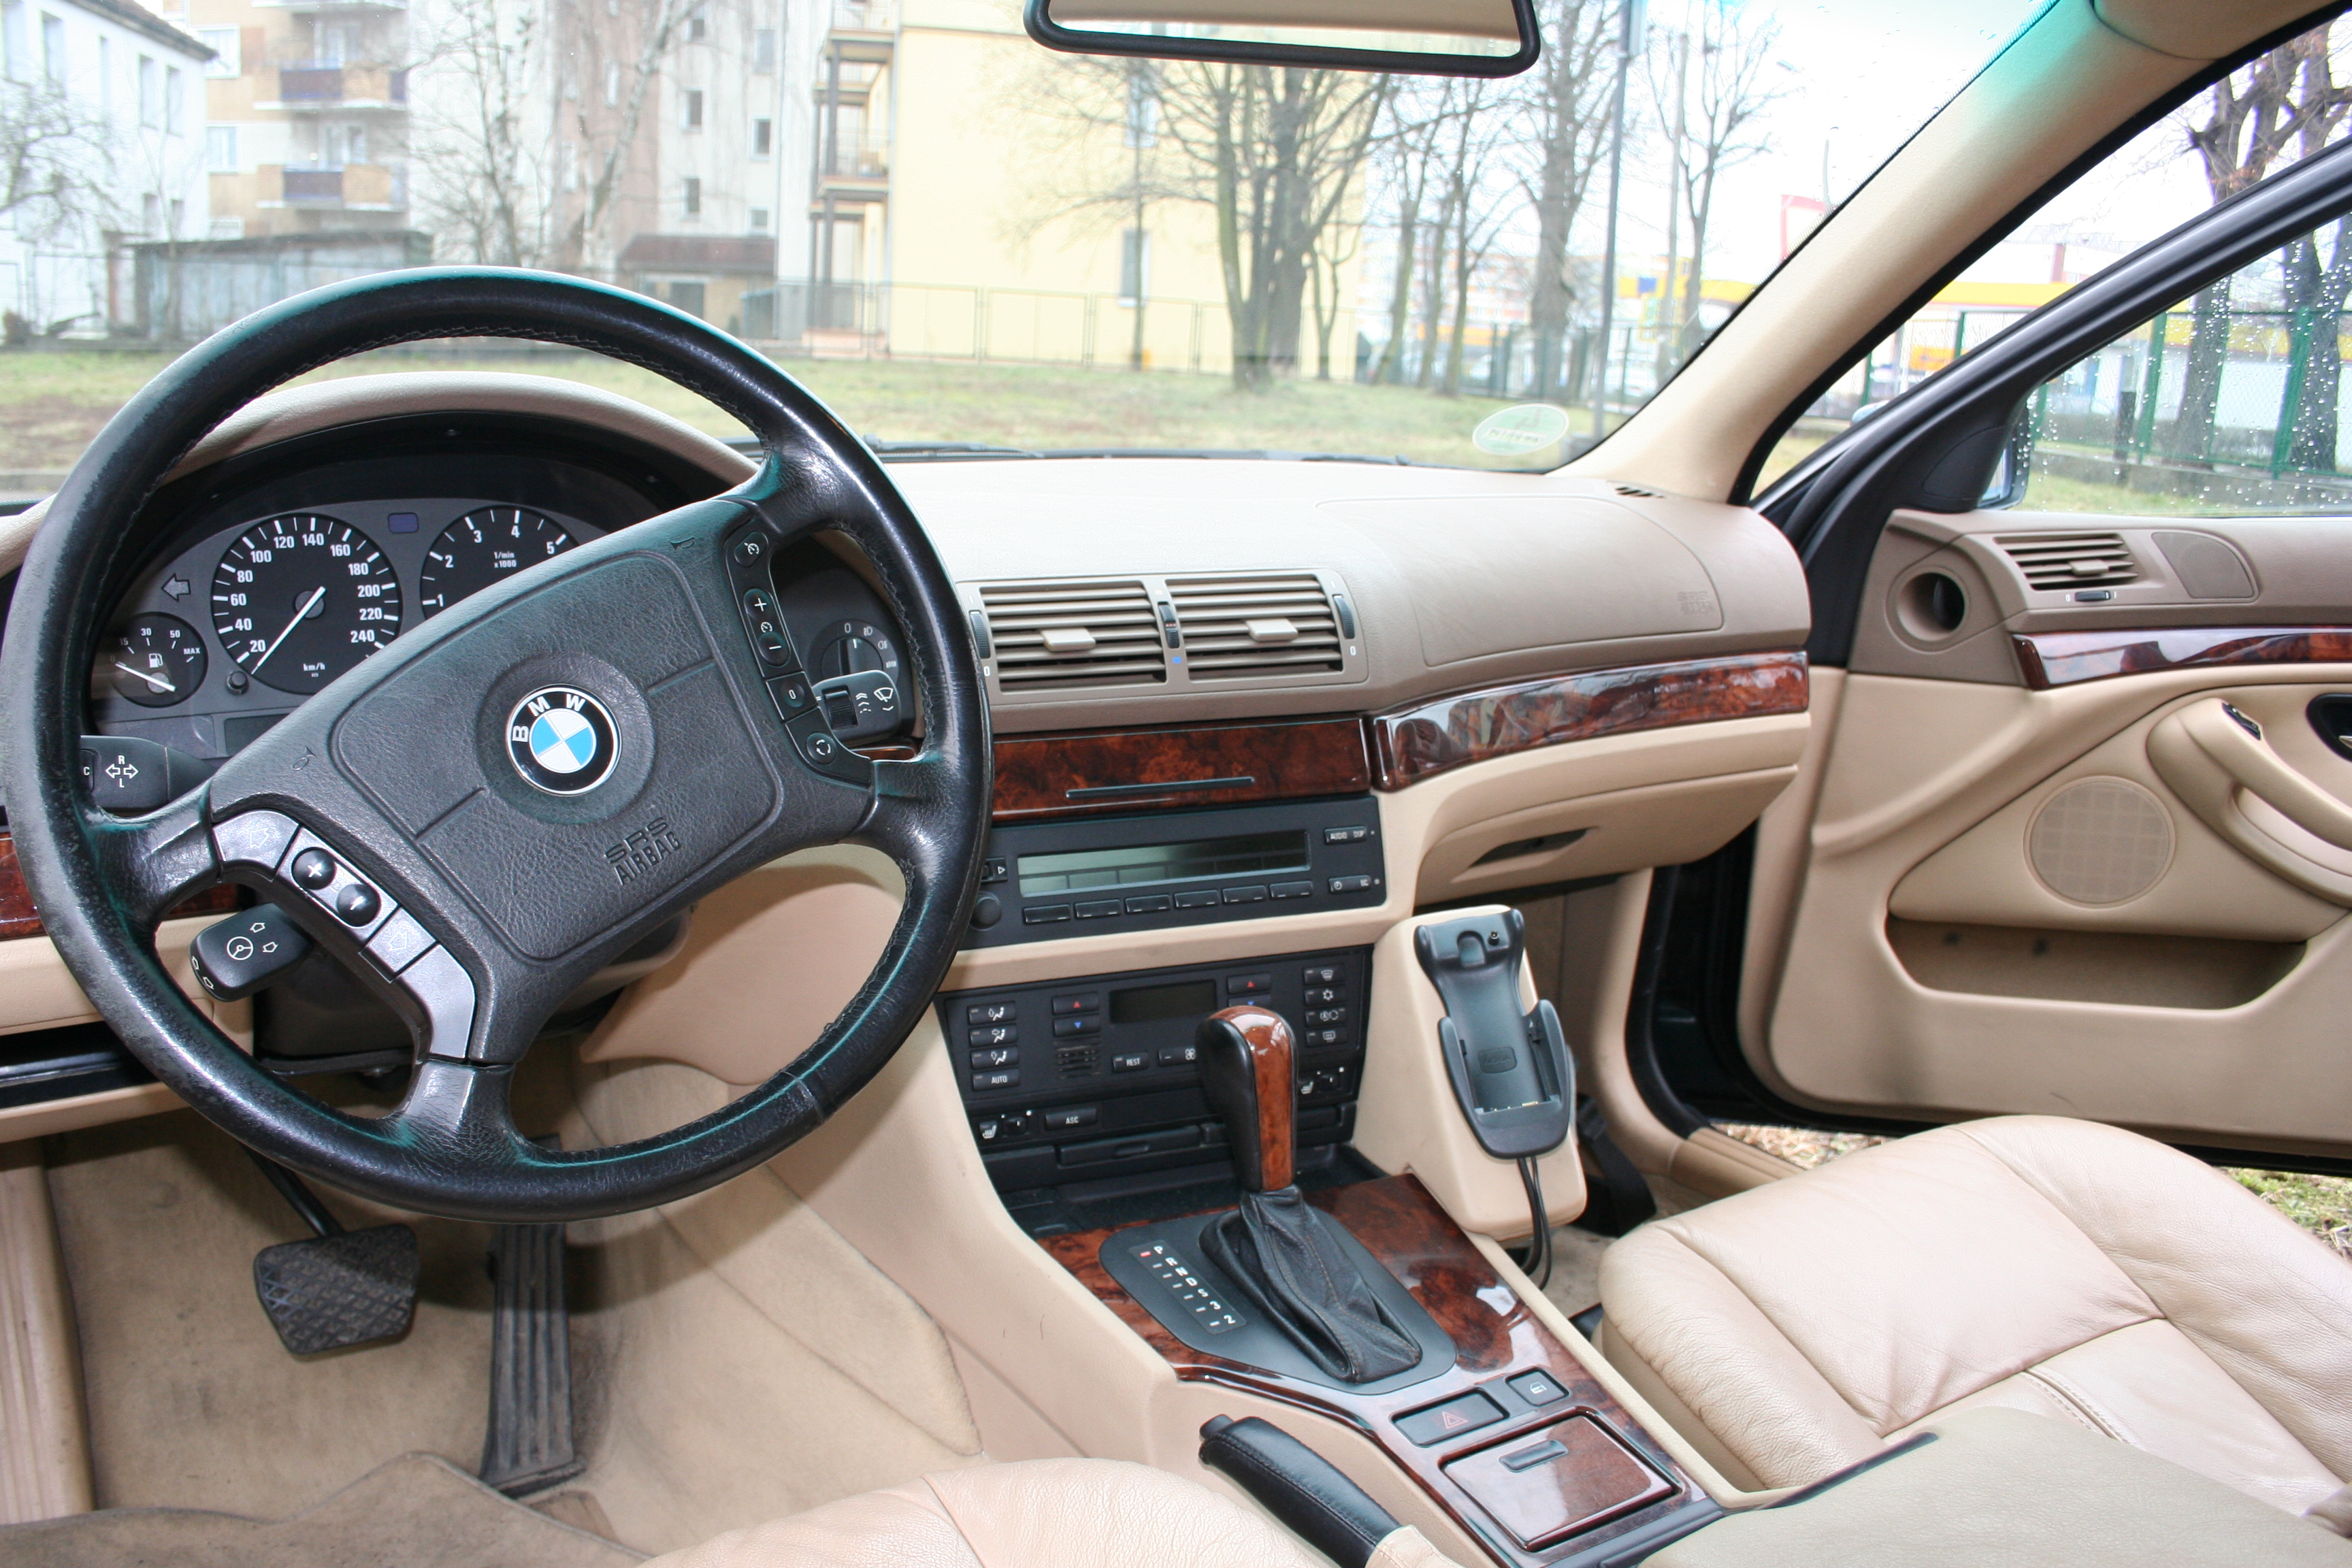 File:Bmw 528 interior 96.JPG - Wikimedia Commons